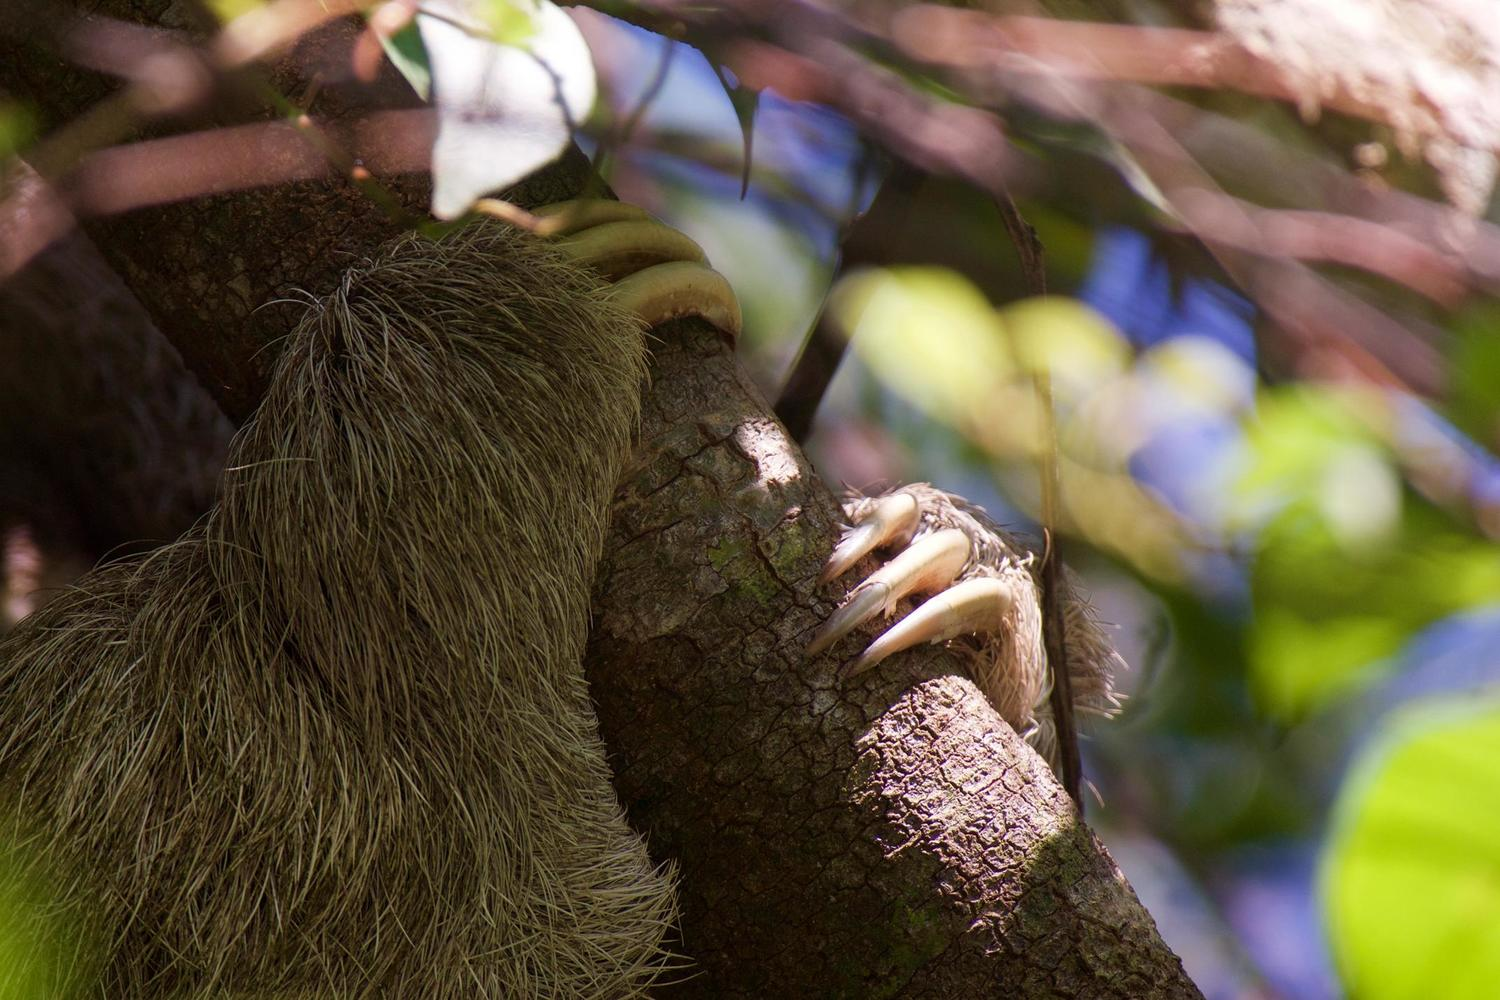 Sloth clinging on